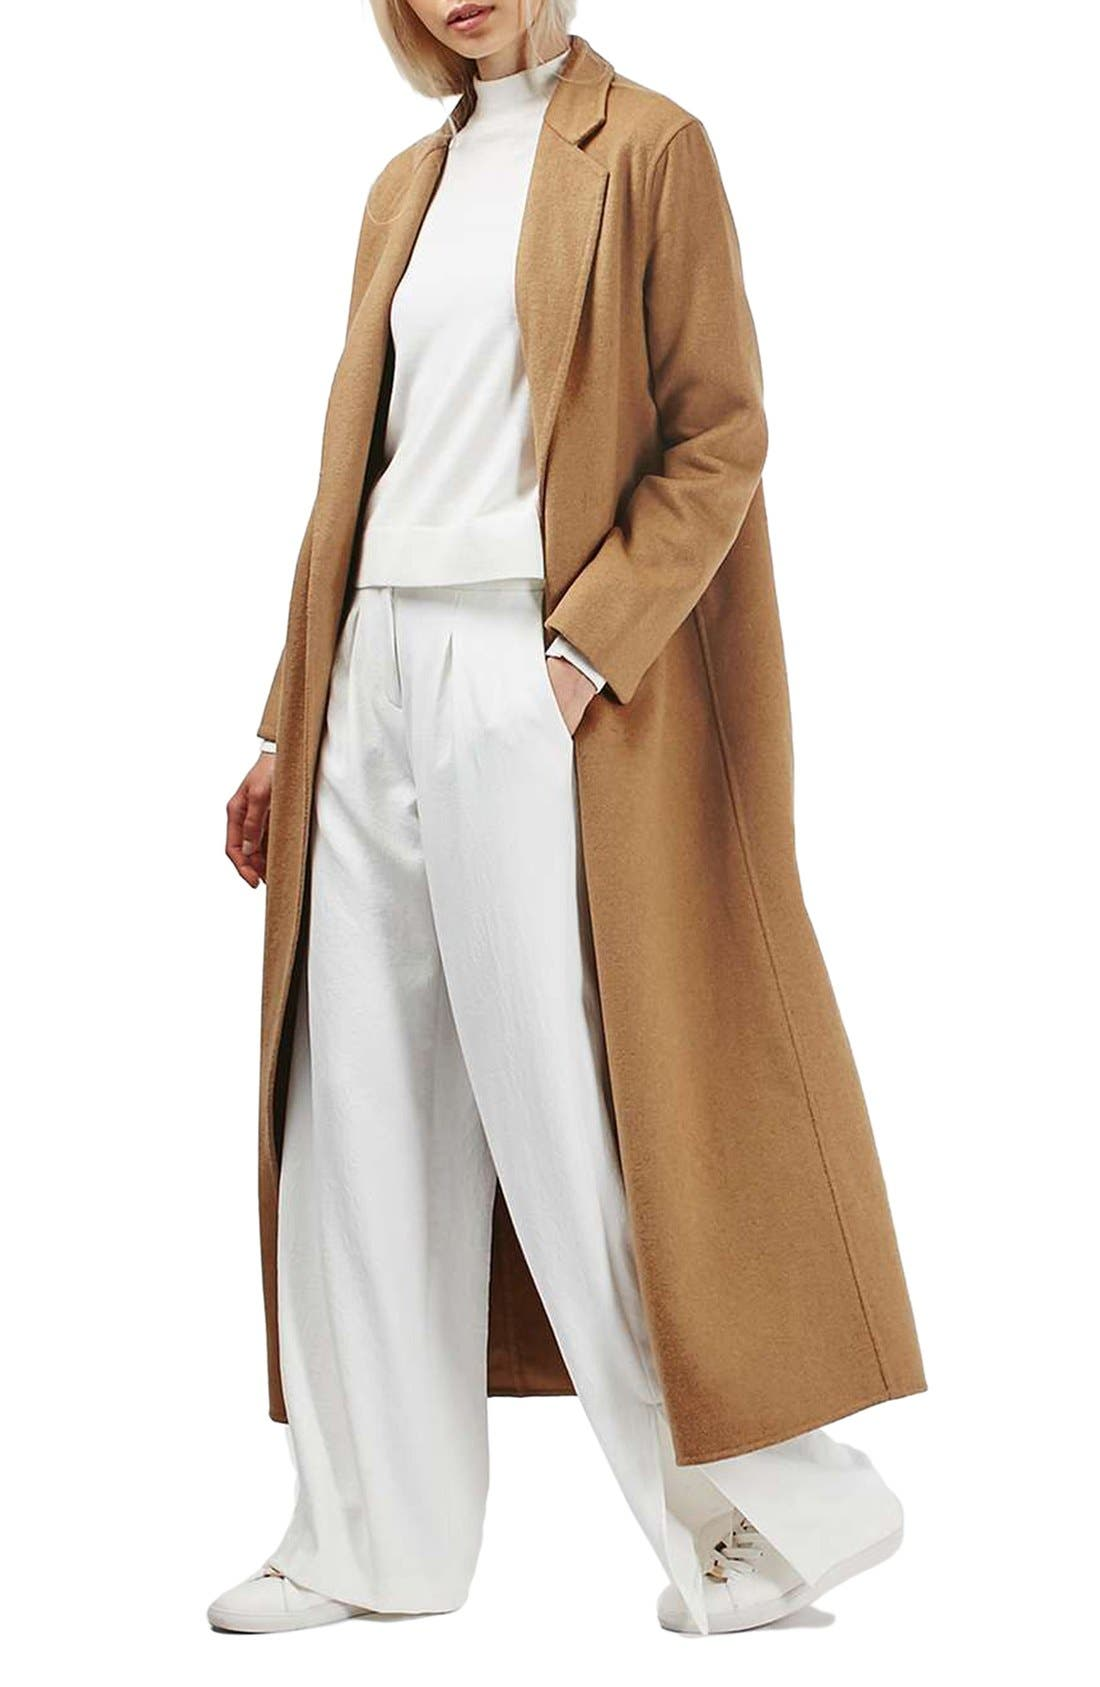 Alternate Image 1 Selected - Topshop Butted Seam Duster Coat